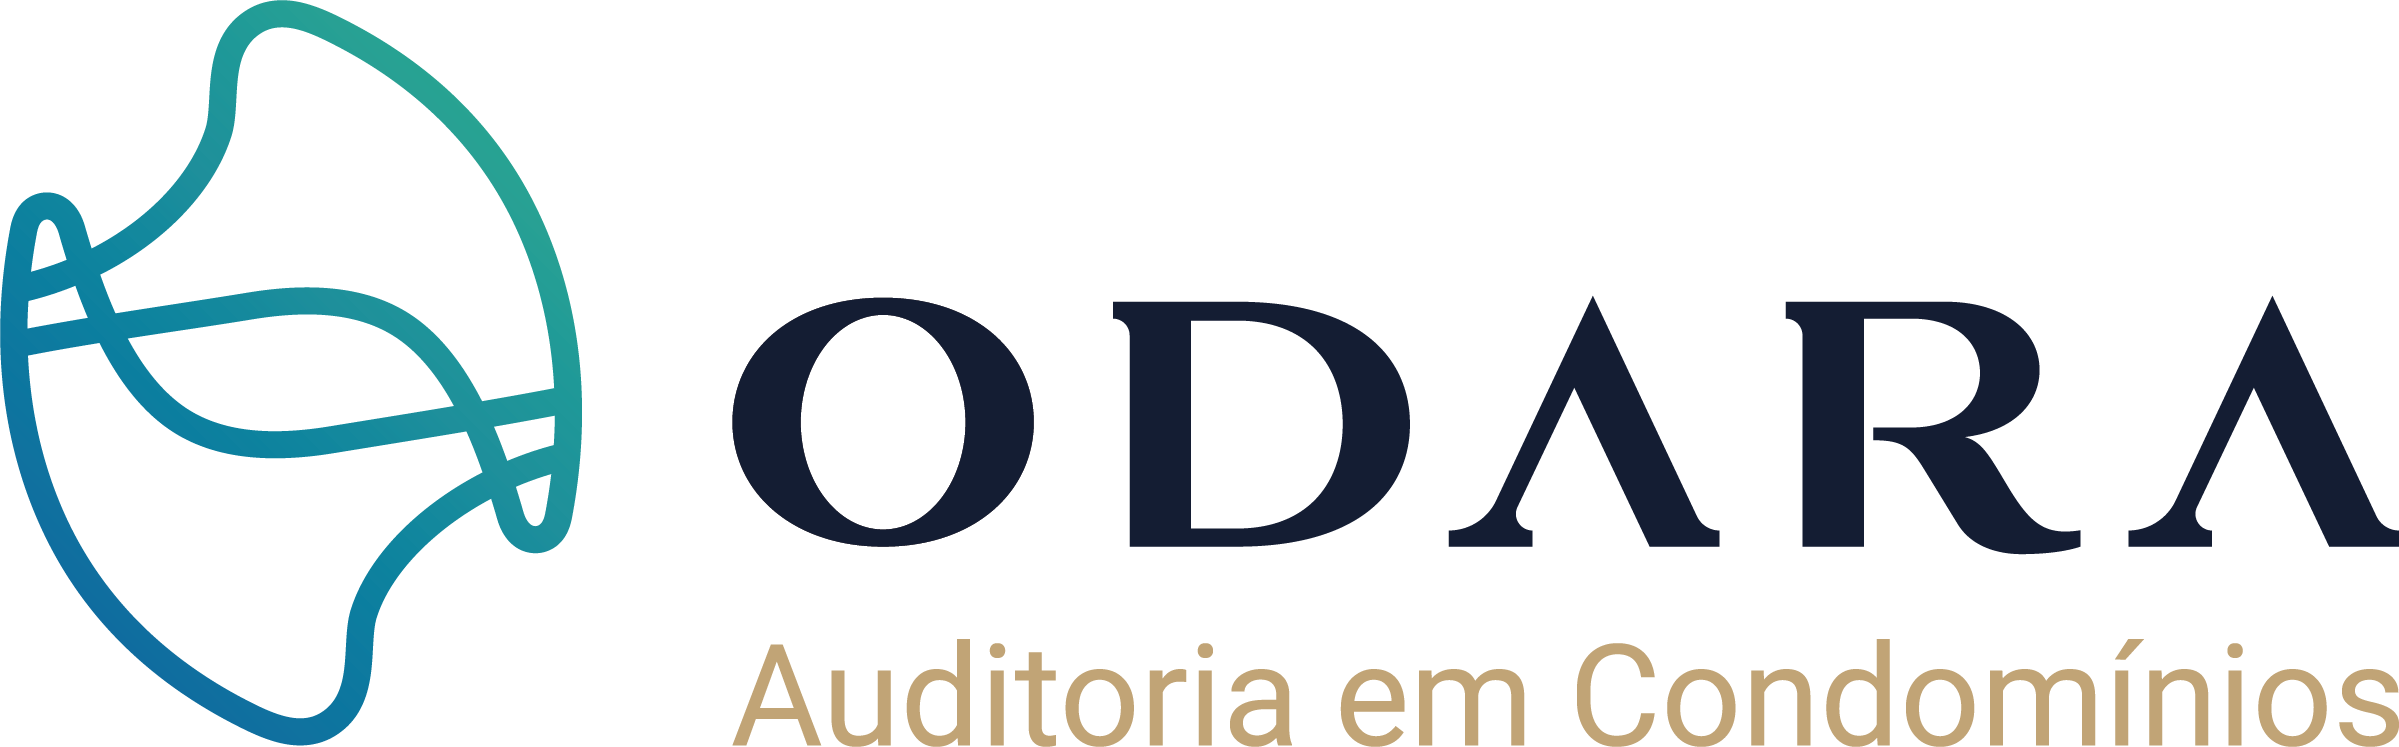 Odara Auditoria